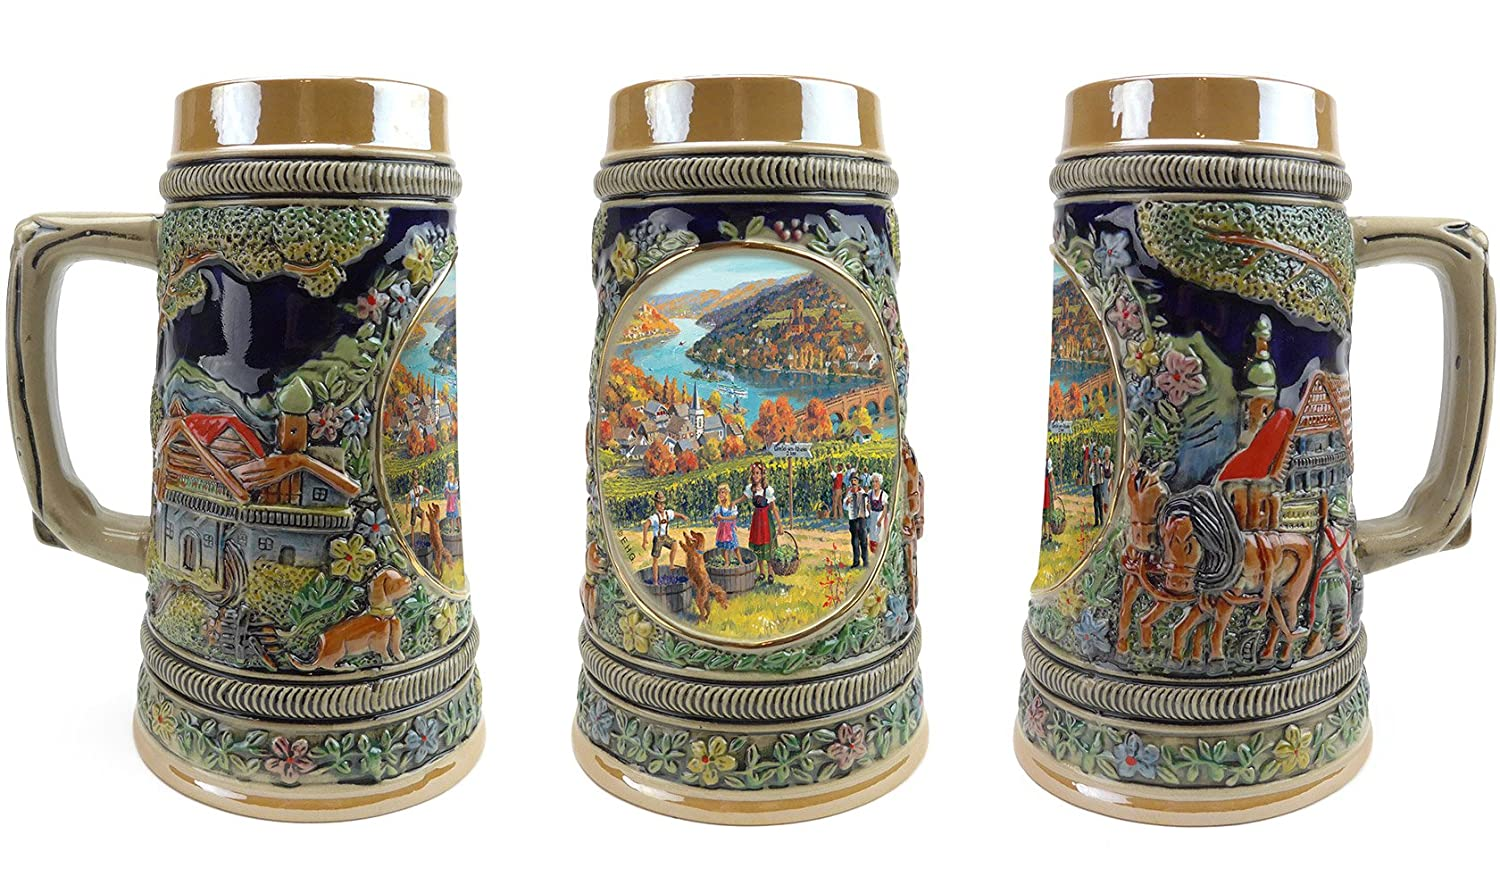 """Fall In Germany"" Essence of Europe Gifts E.H.G. Collectible Ceramic Beer Stein (#1 in Collection of Four Steins) S4626"